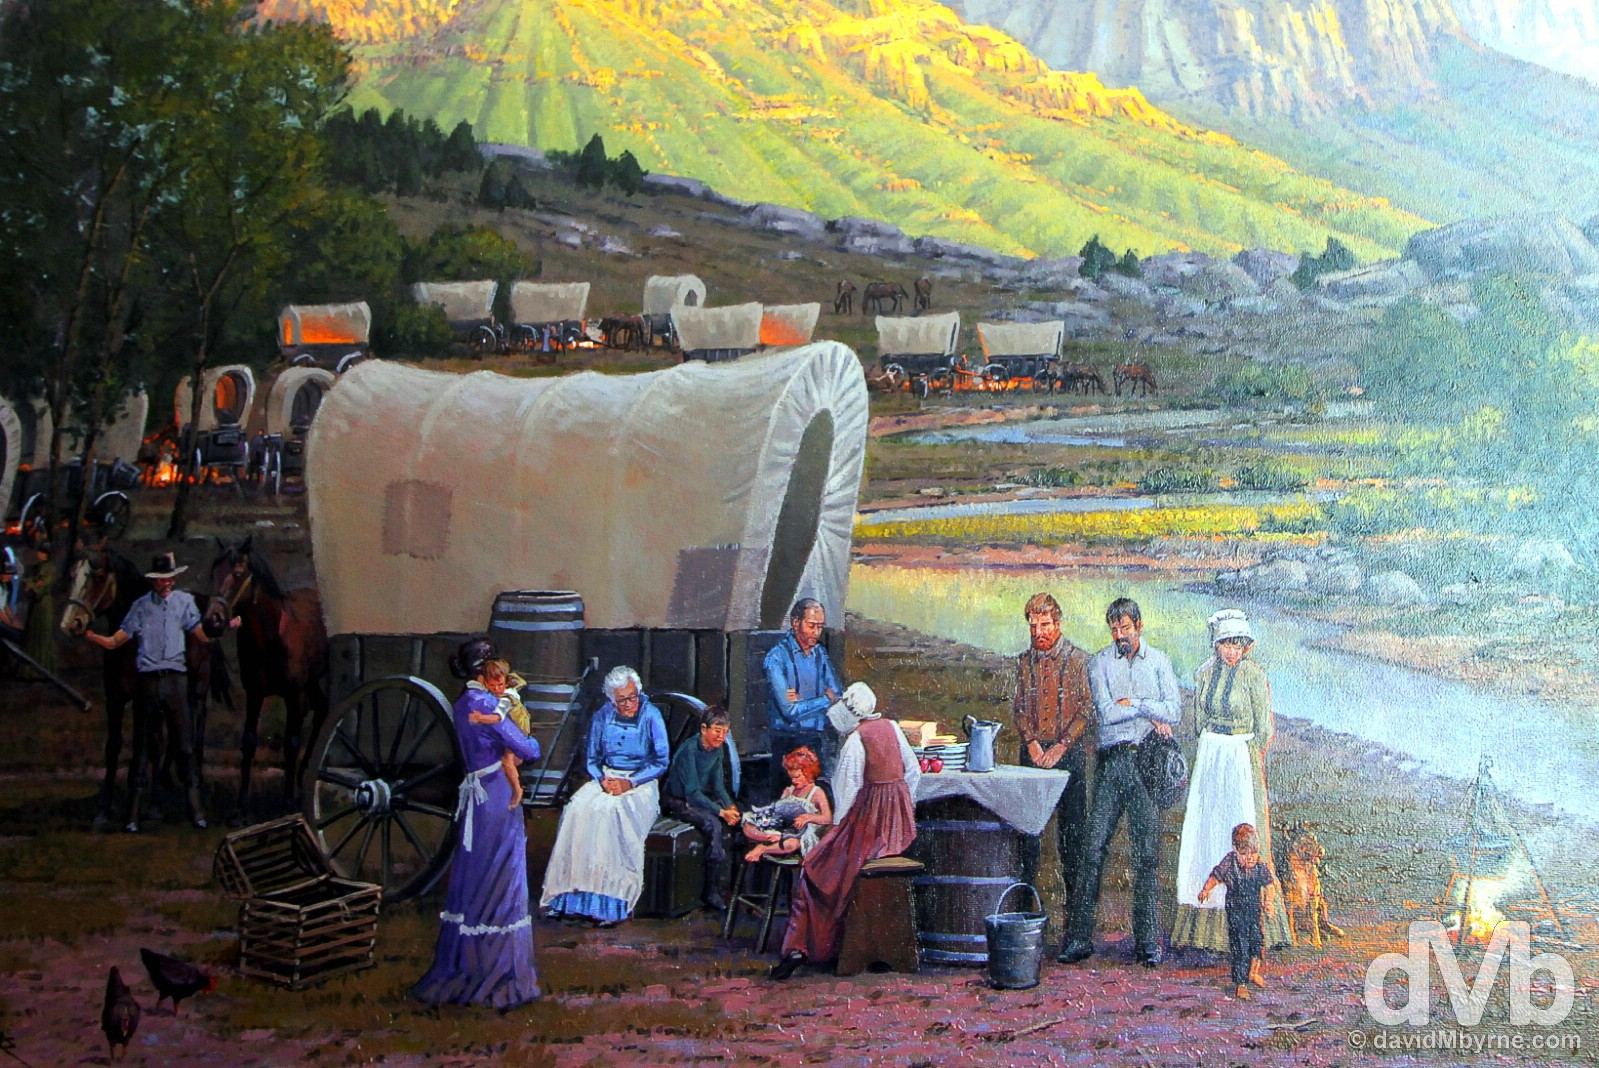 A Mormon wagon train painting in the Church of Jesus Christ of Later-Day Saints Conference Center, Salt Lake City, Utah, USA. September 7, 2016.